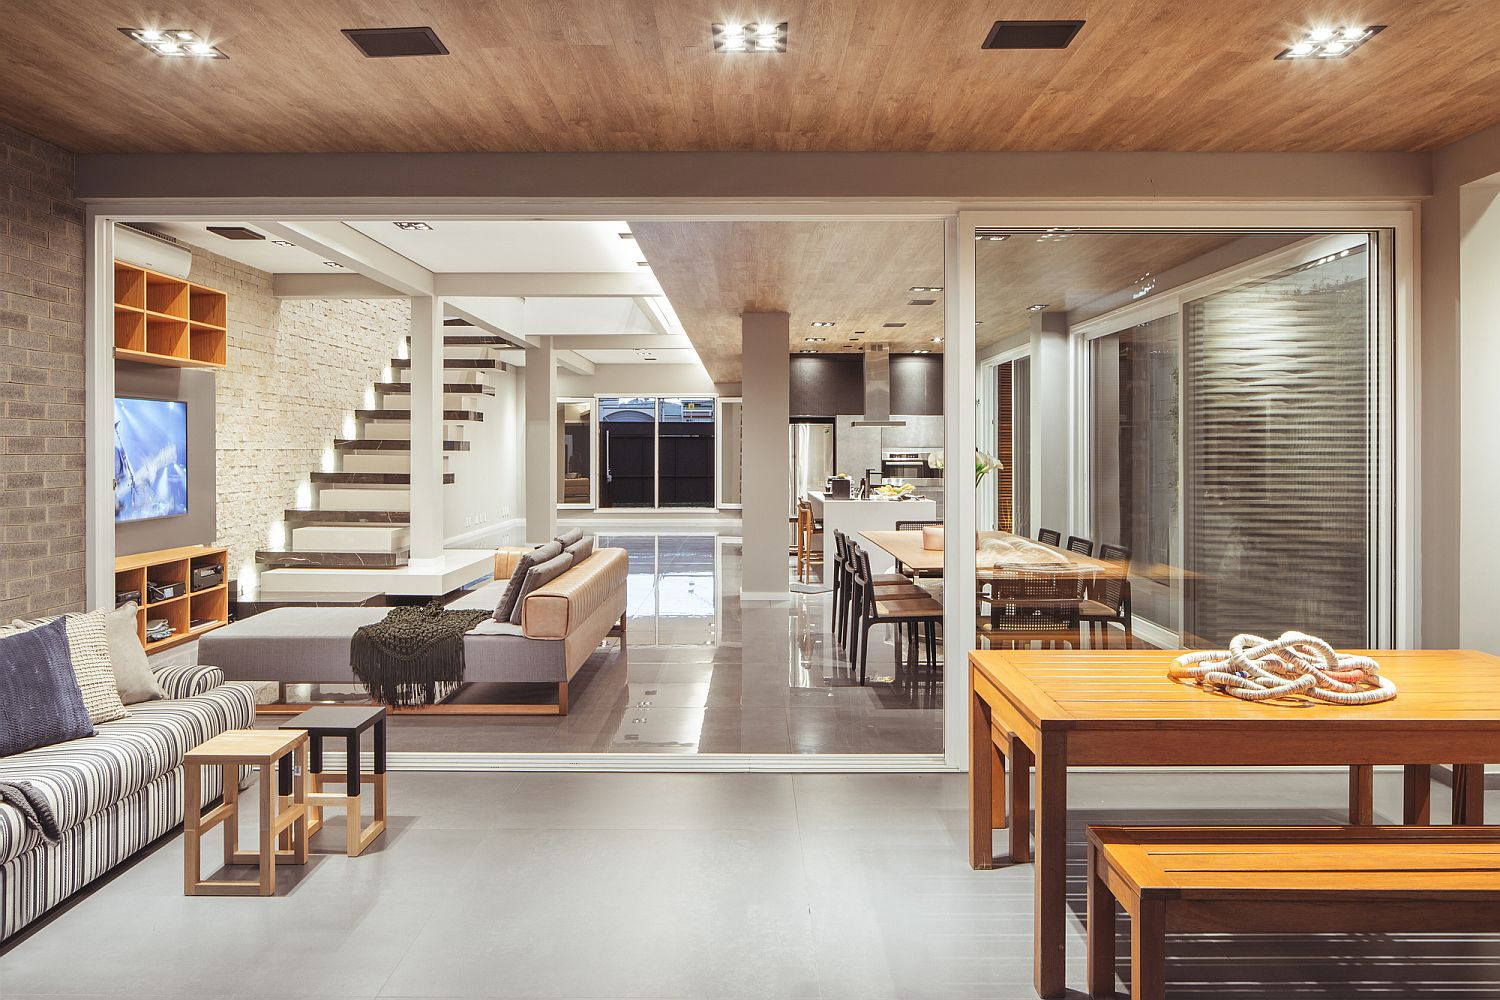 Large sliding glass doors connect the interior with the deck outside